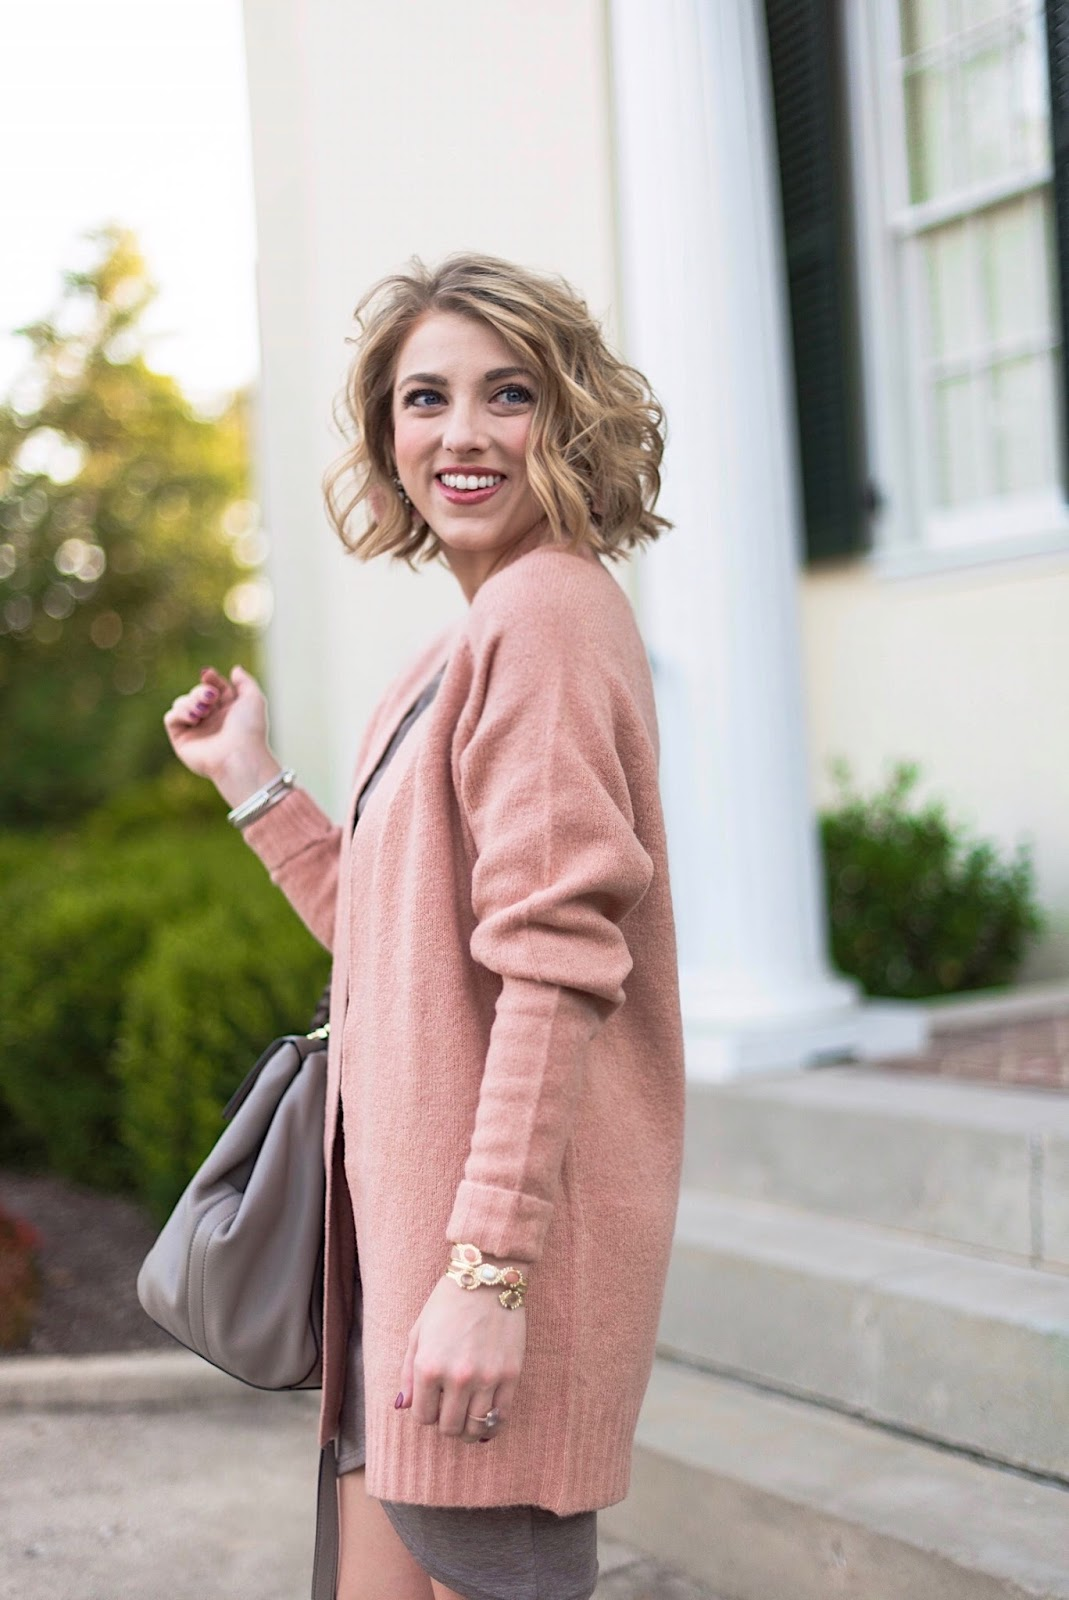 Rose Pink Cardigan - Something Delightful Blog